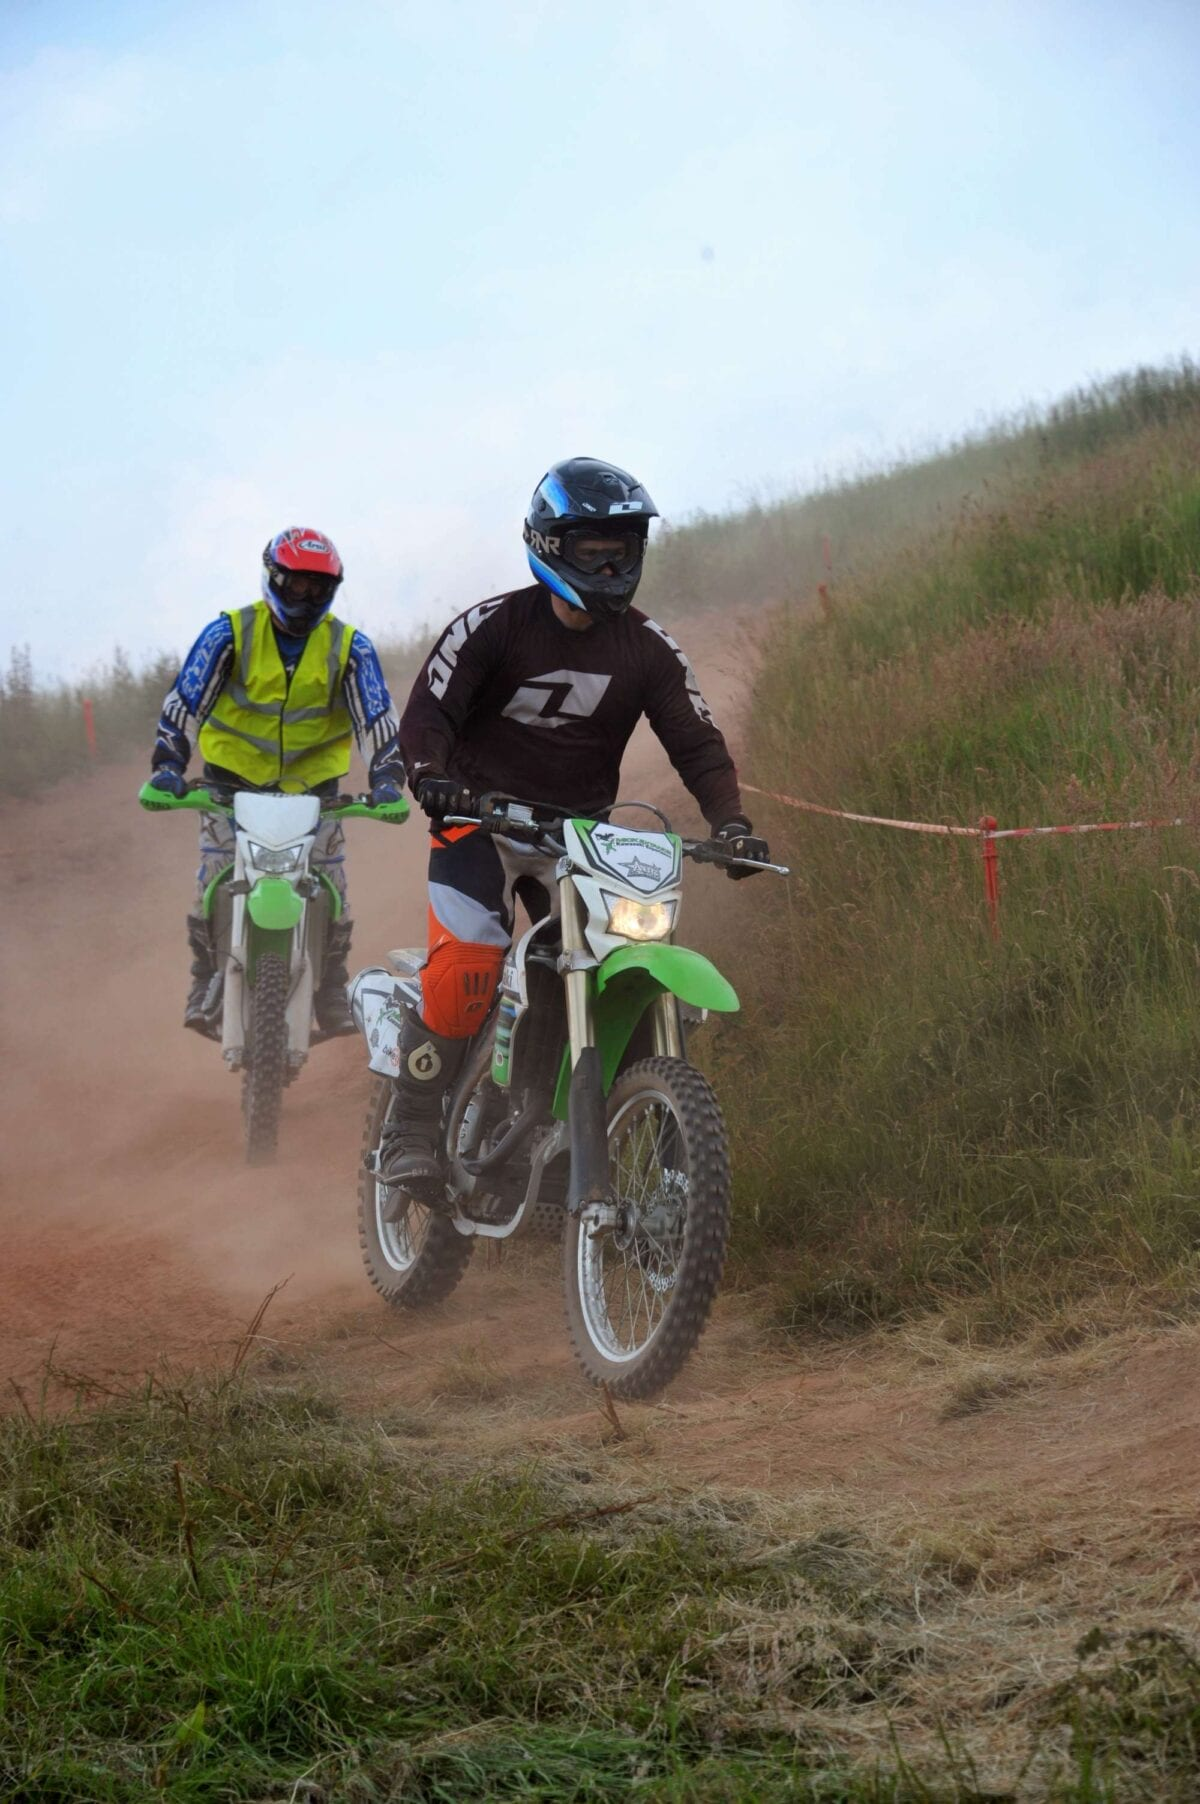 Motorcycle Off-Road Experience pic